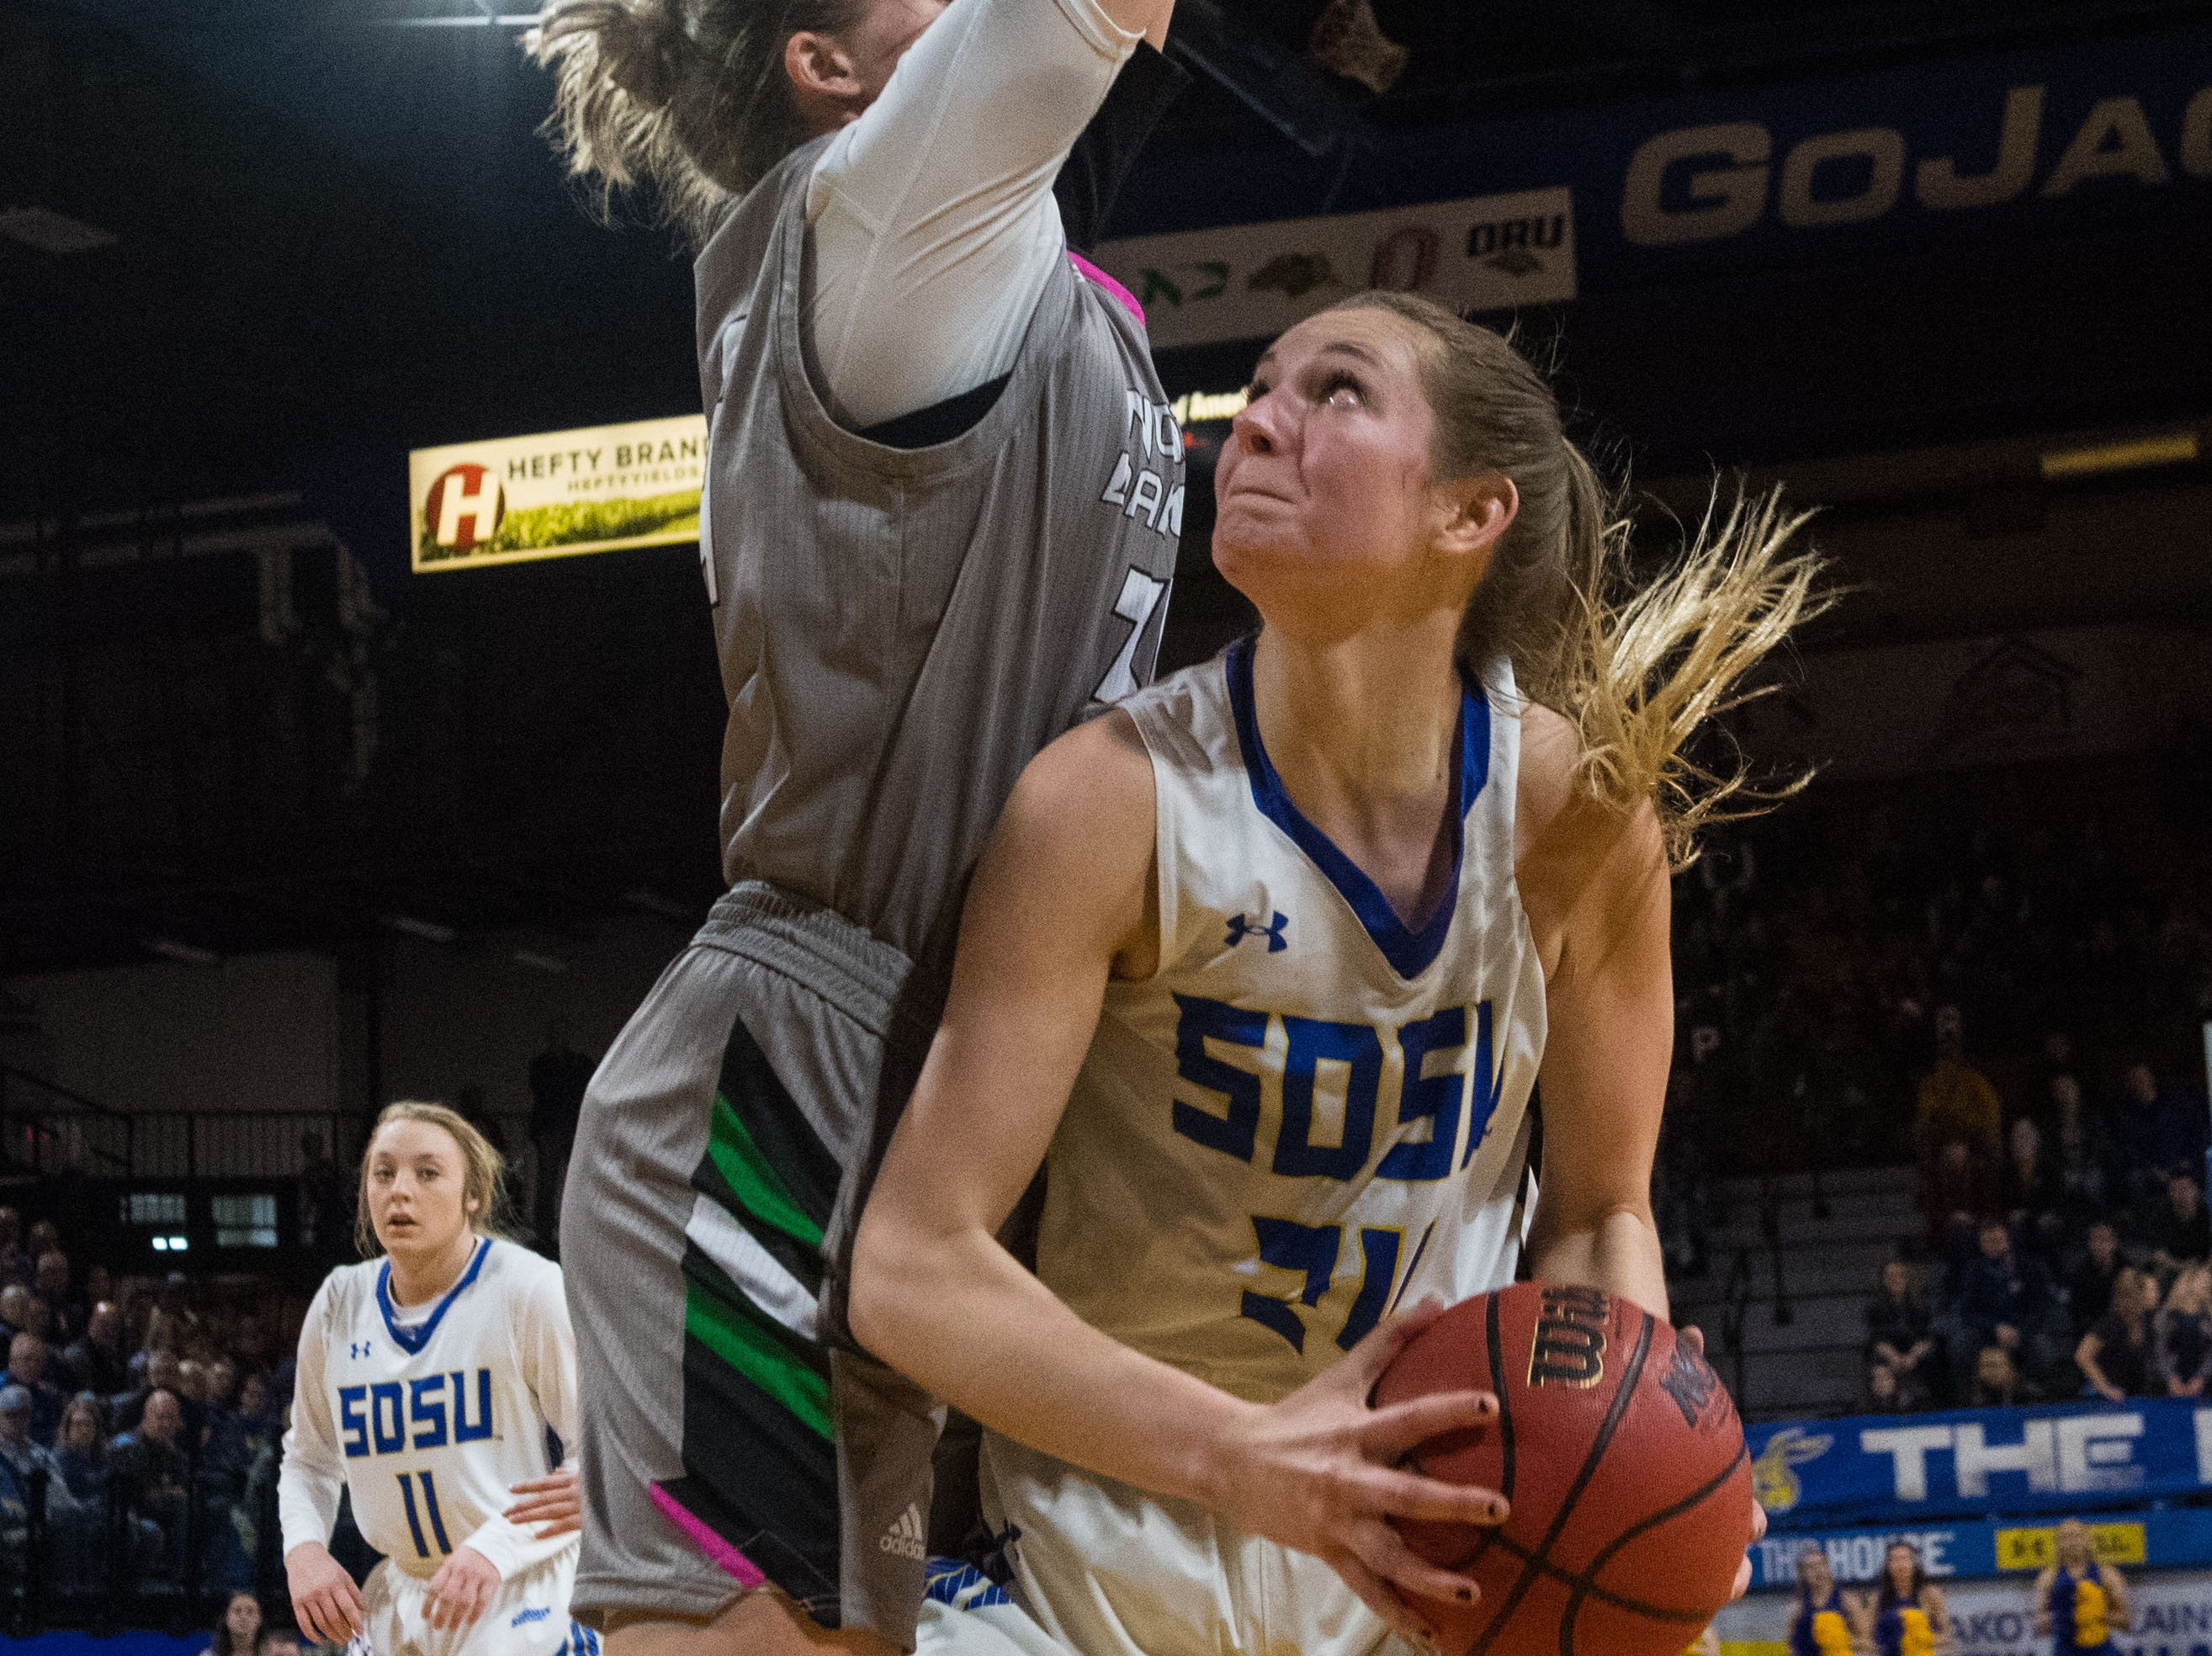 South Dakota State's Tagyn Larson (24) prepares to shoot the ball during a game against North Dakota in Brookings, S.D., Saturday, Feb. 9, 2019.